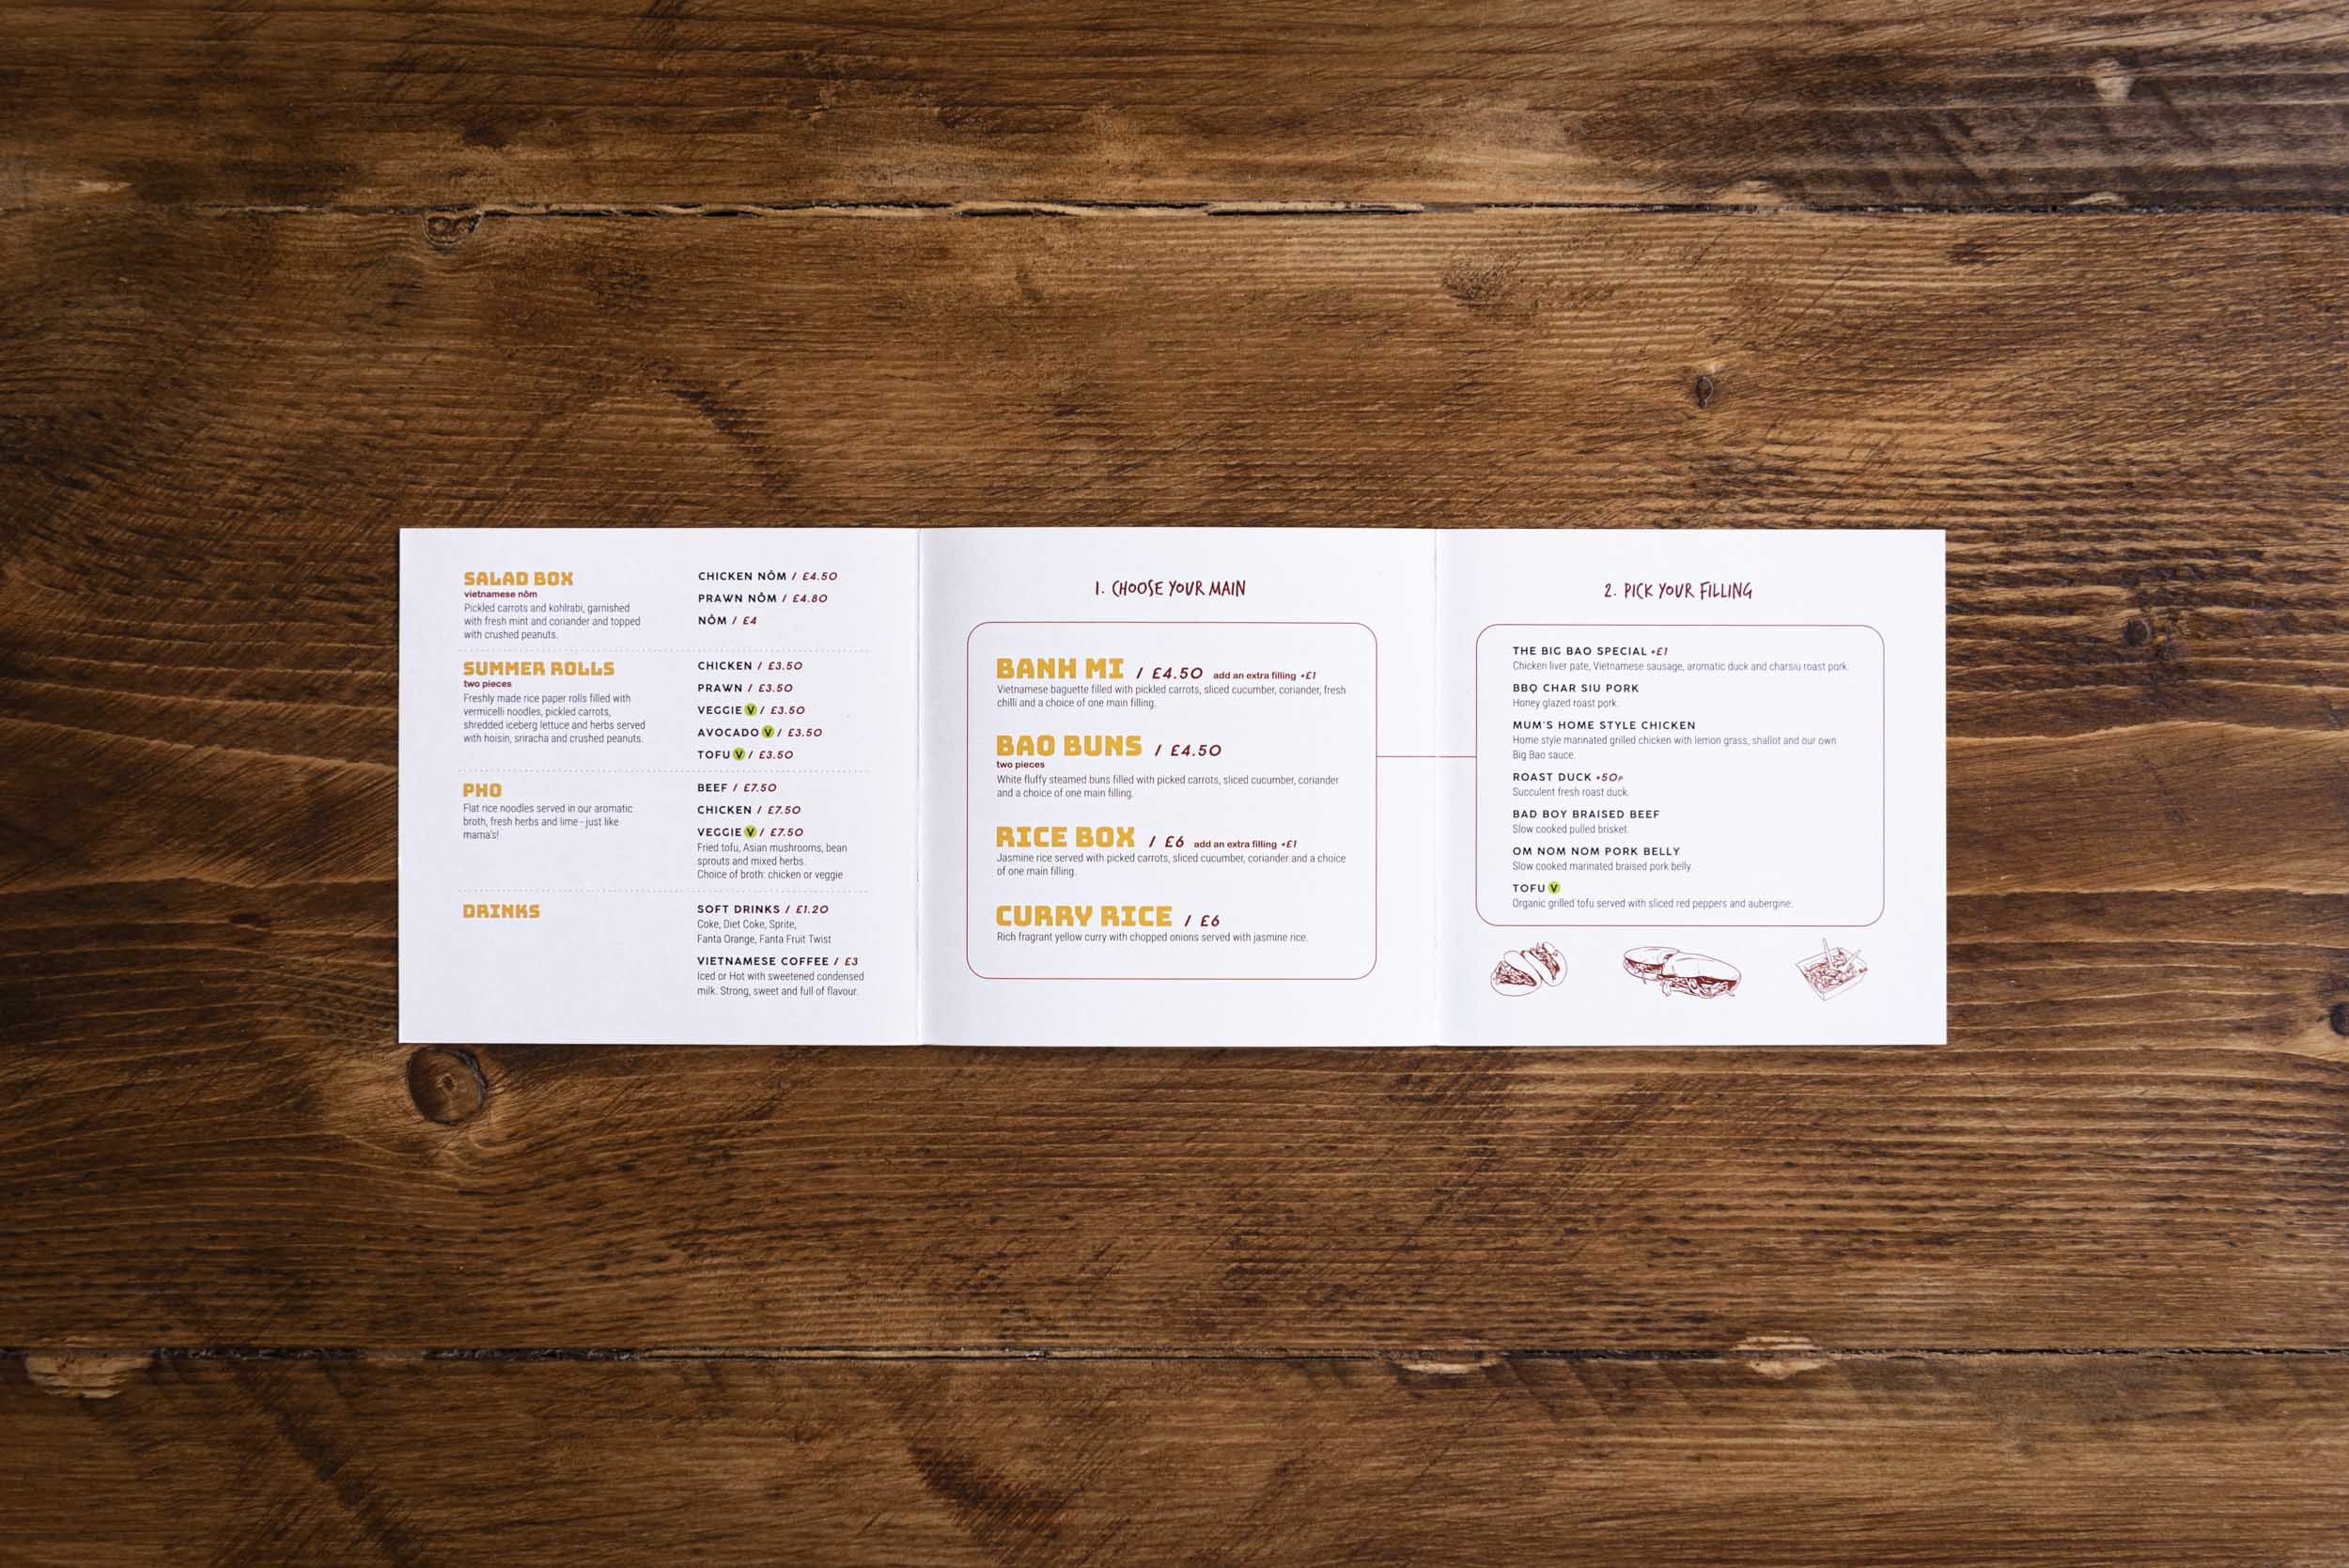 Sen Cafe by Wah Wah Lab - Menu Design 1.jpg